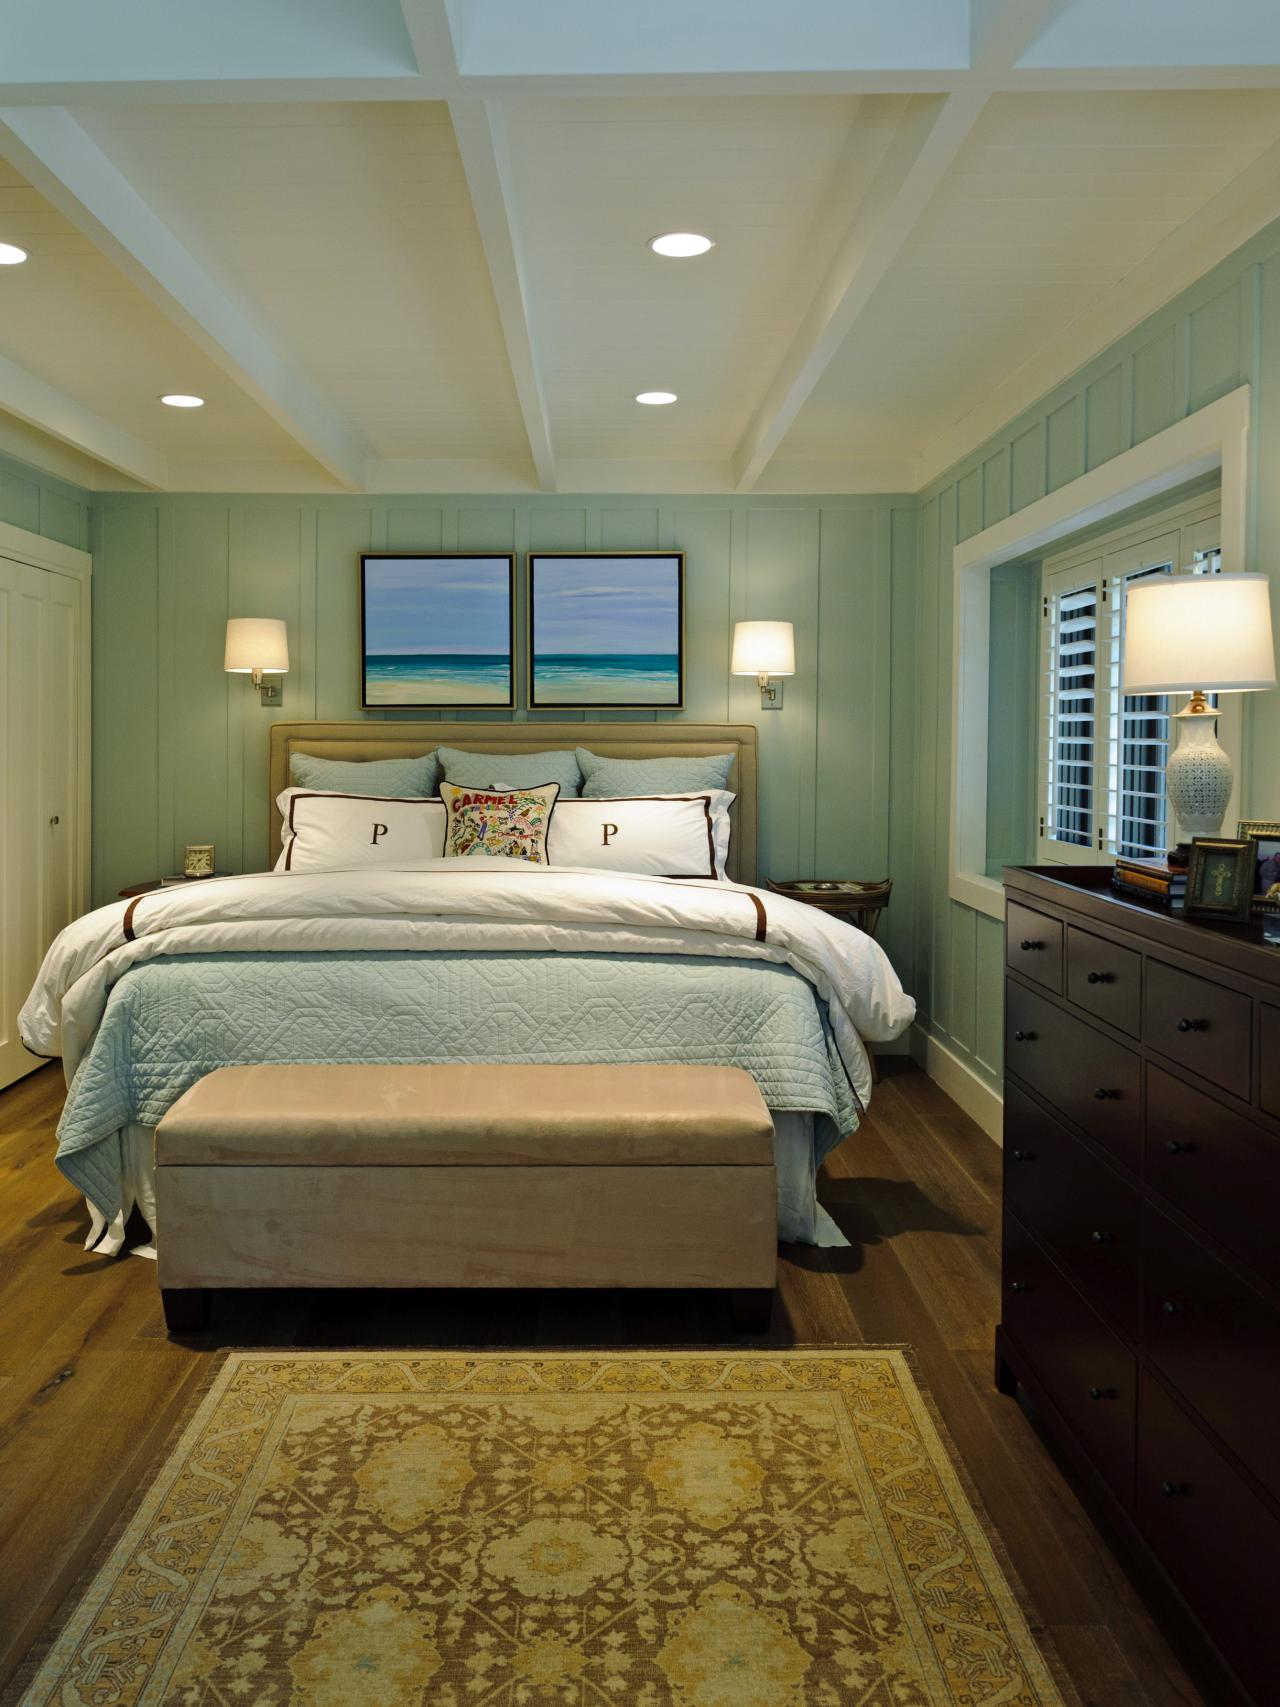 16 Beach Style Bedroom Decorating Ideas